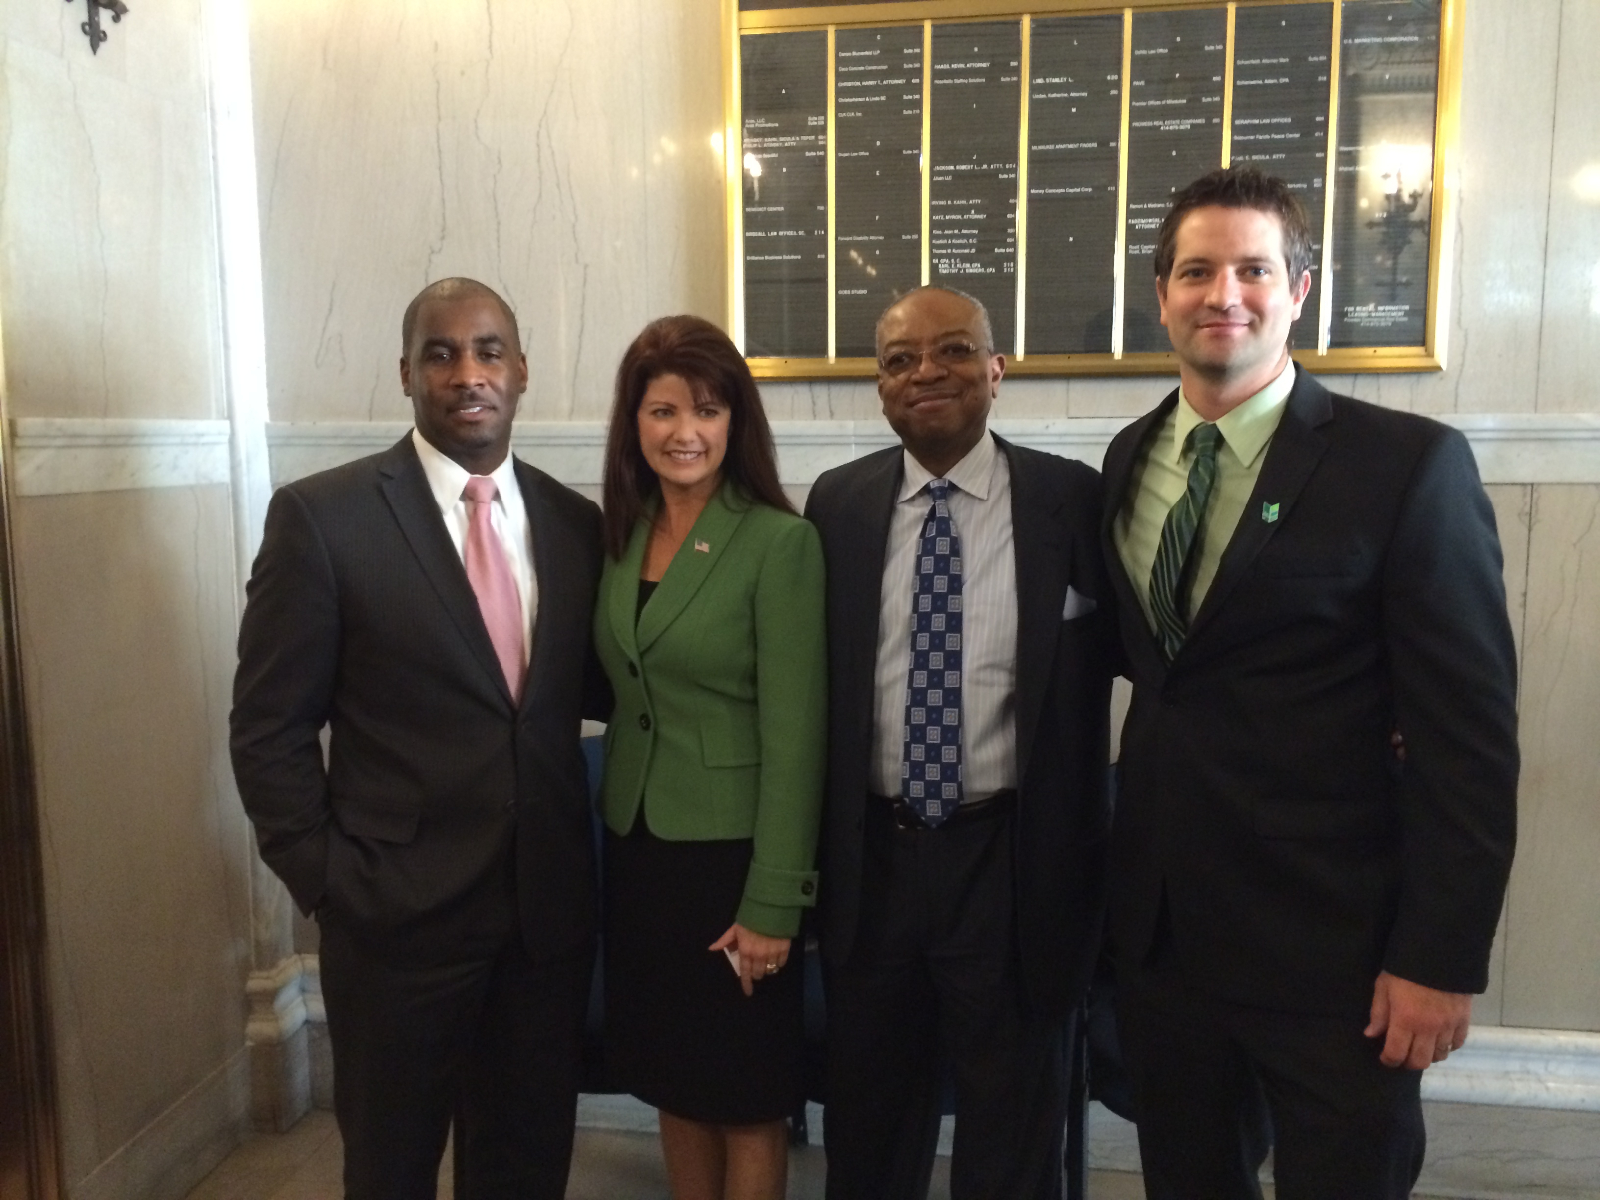 Haywood, Kleefisch, Winston, and O\'Brien